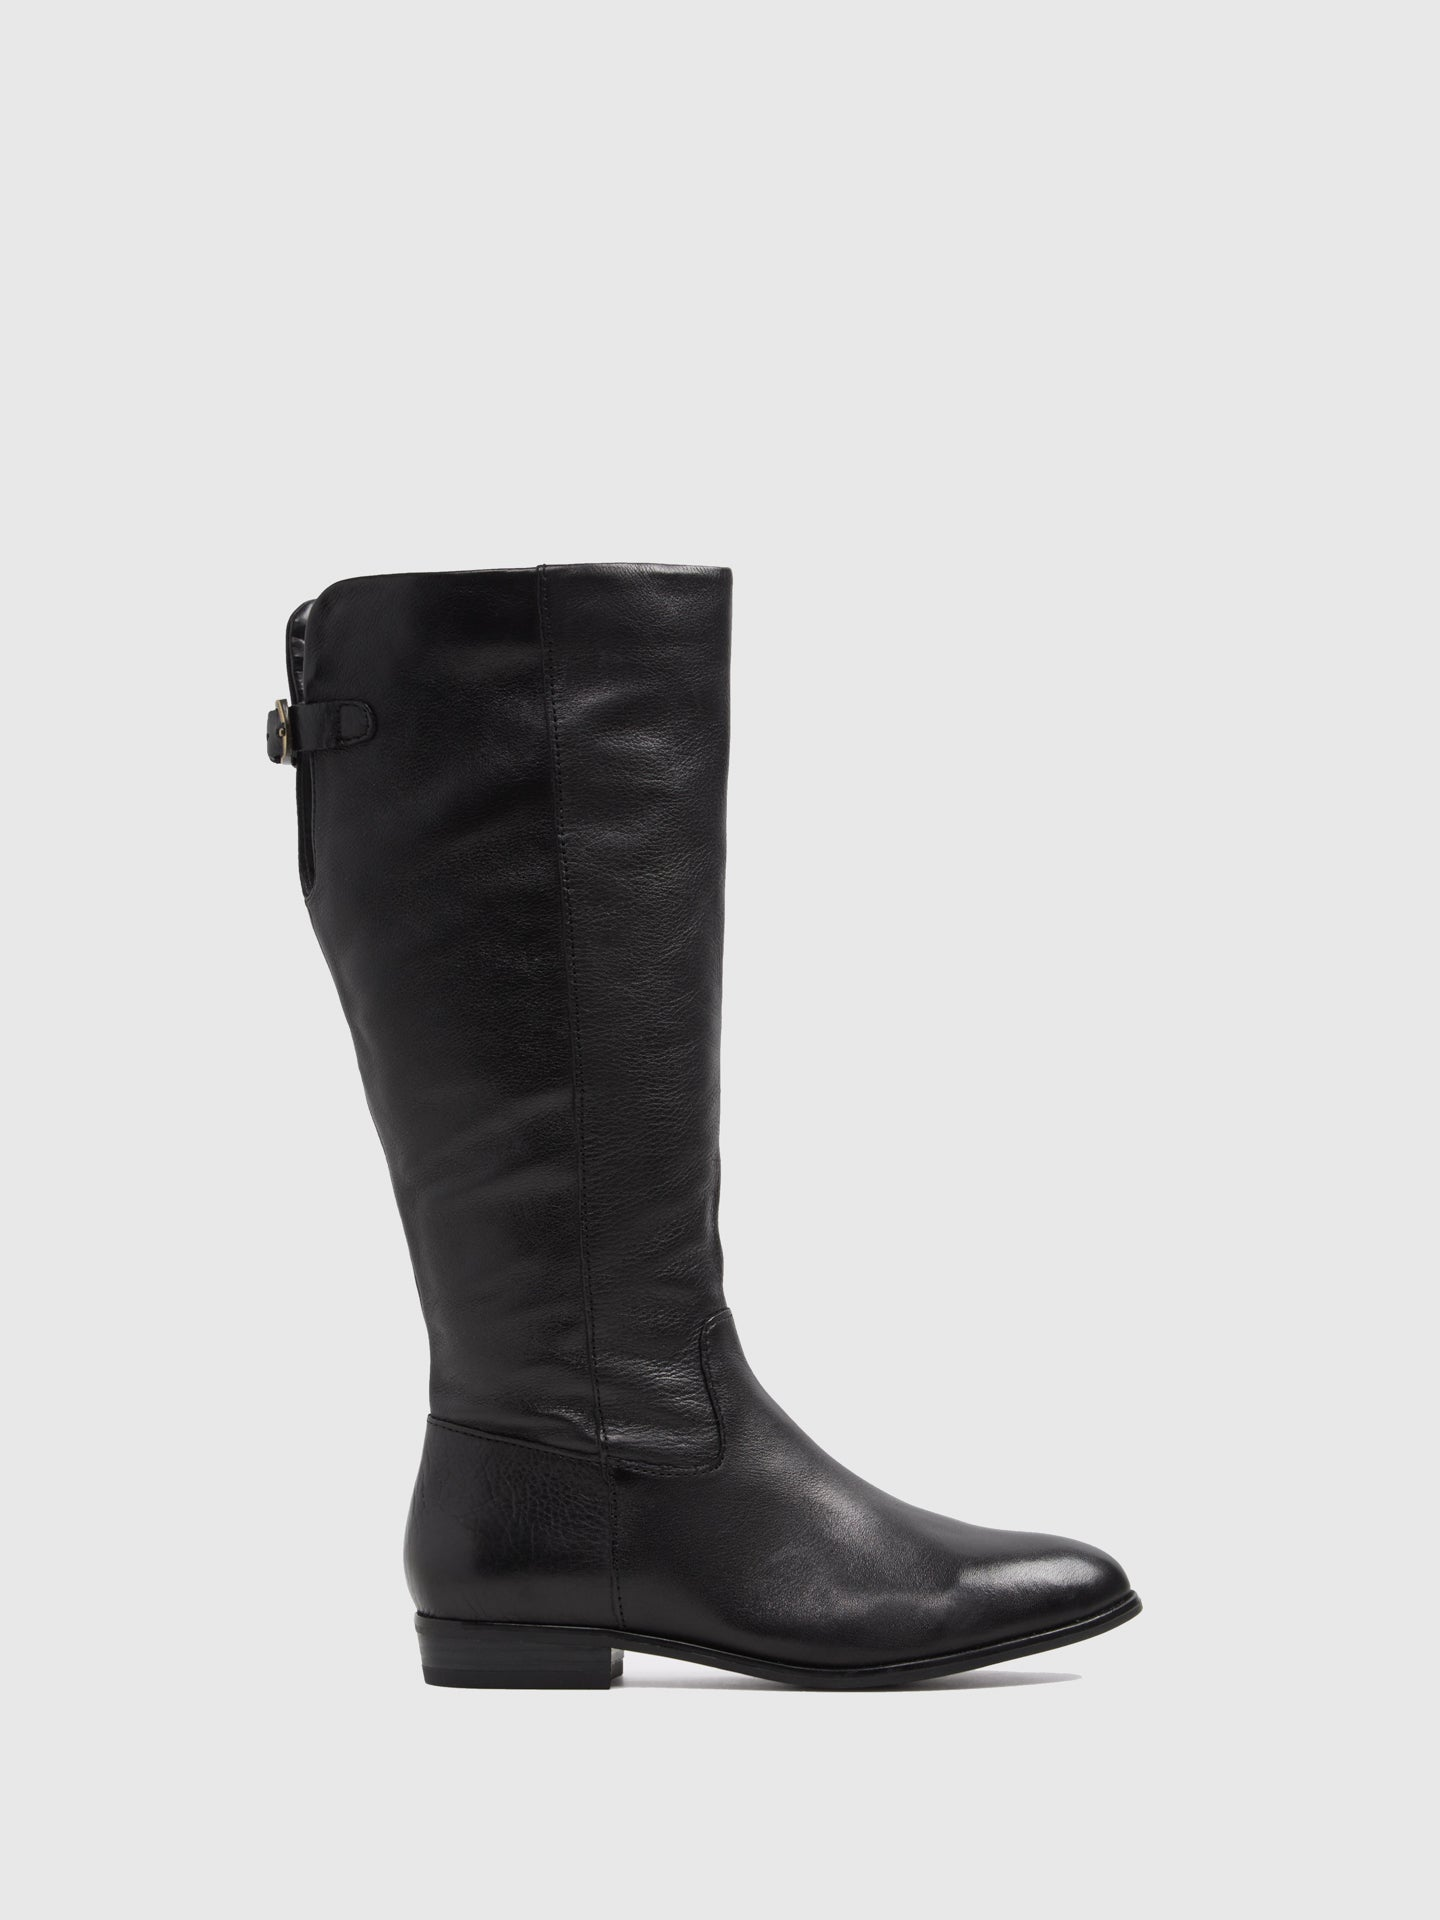 Aldo Black Leather Knee-High Boots